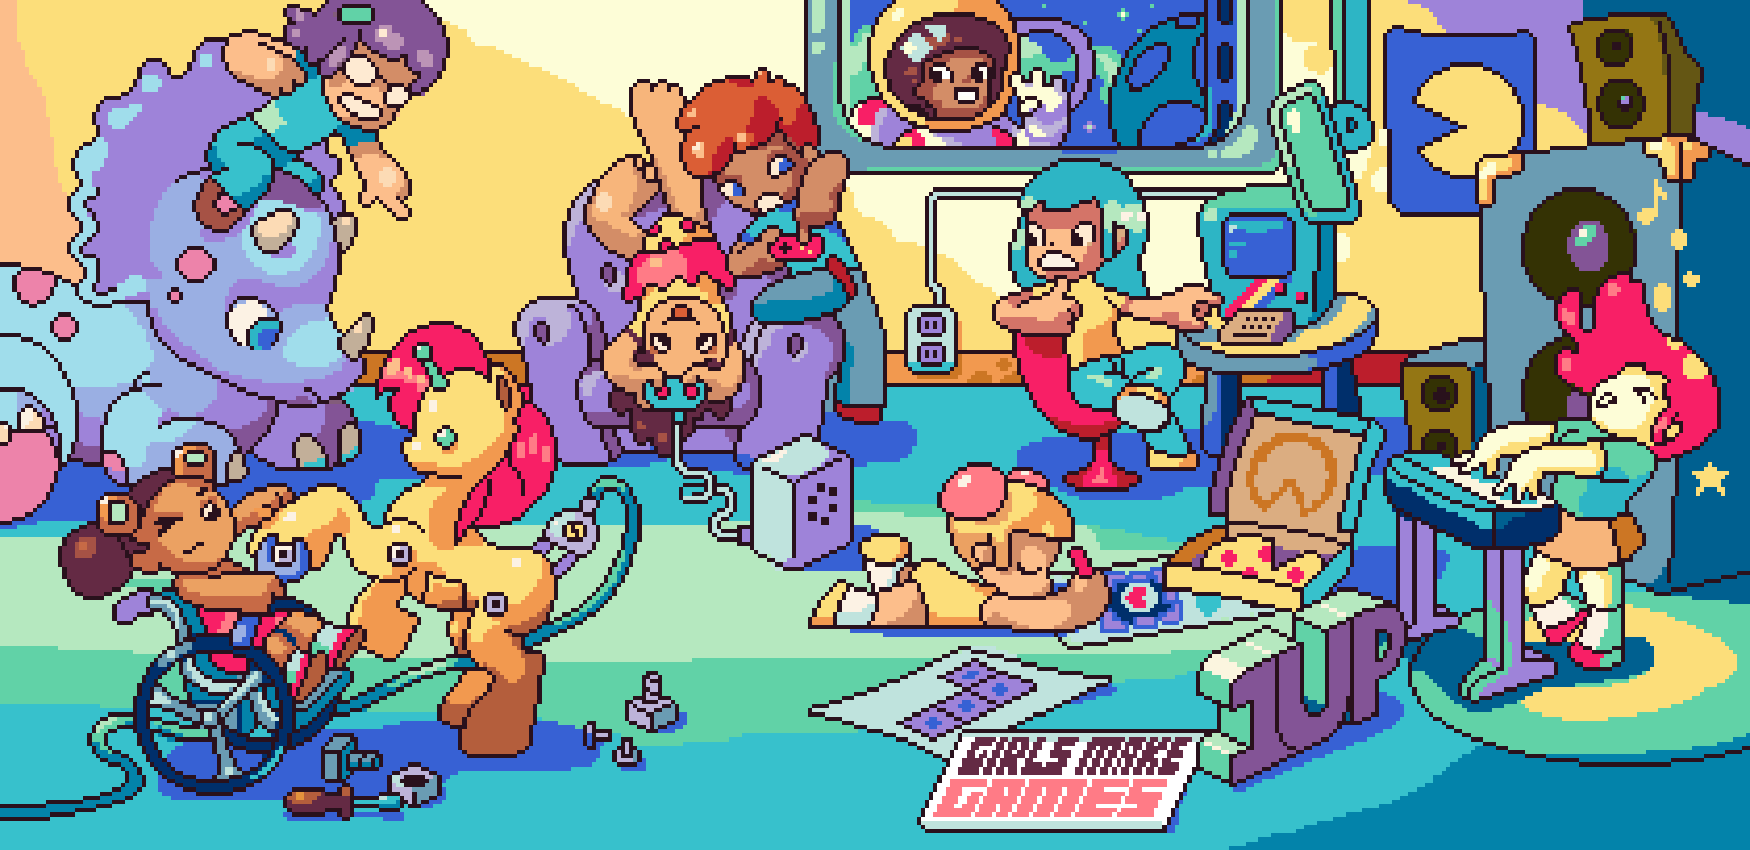 Girls Make Games poster created and donated by Christina Neofotistou (@castpixel)